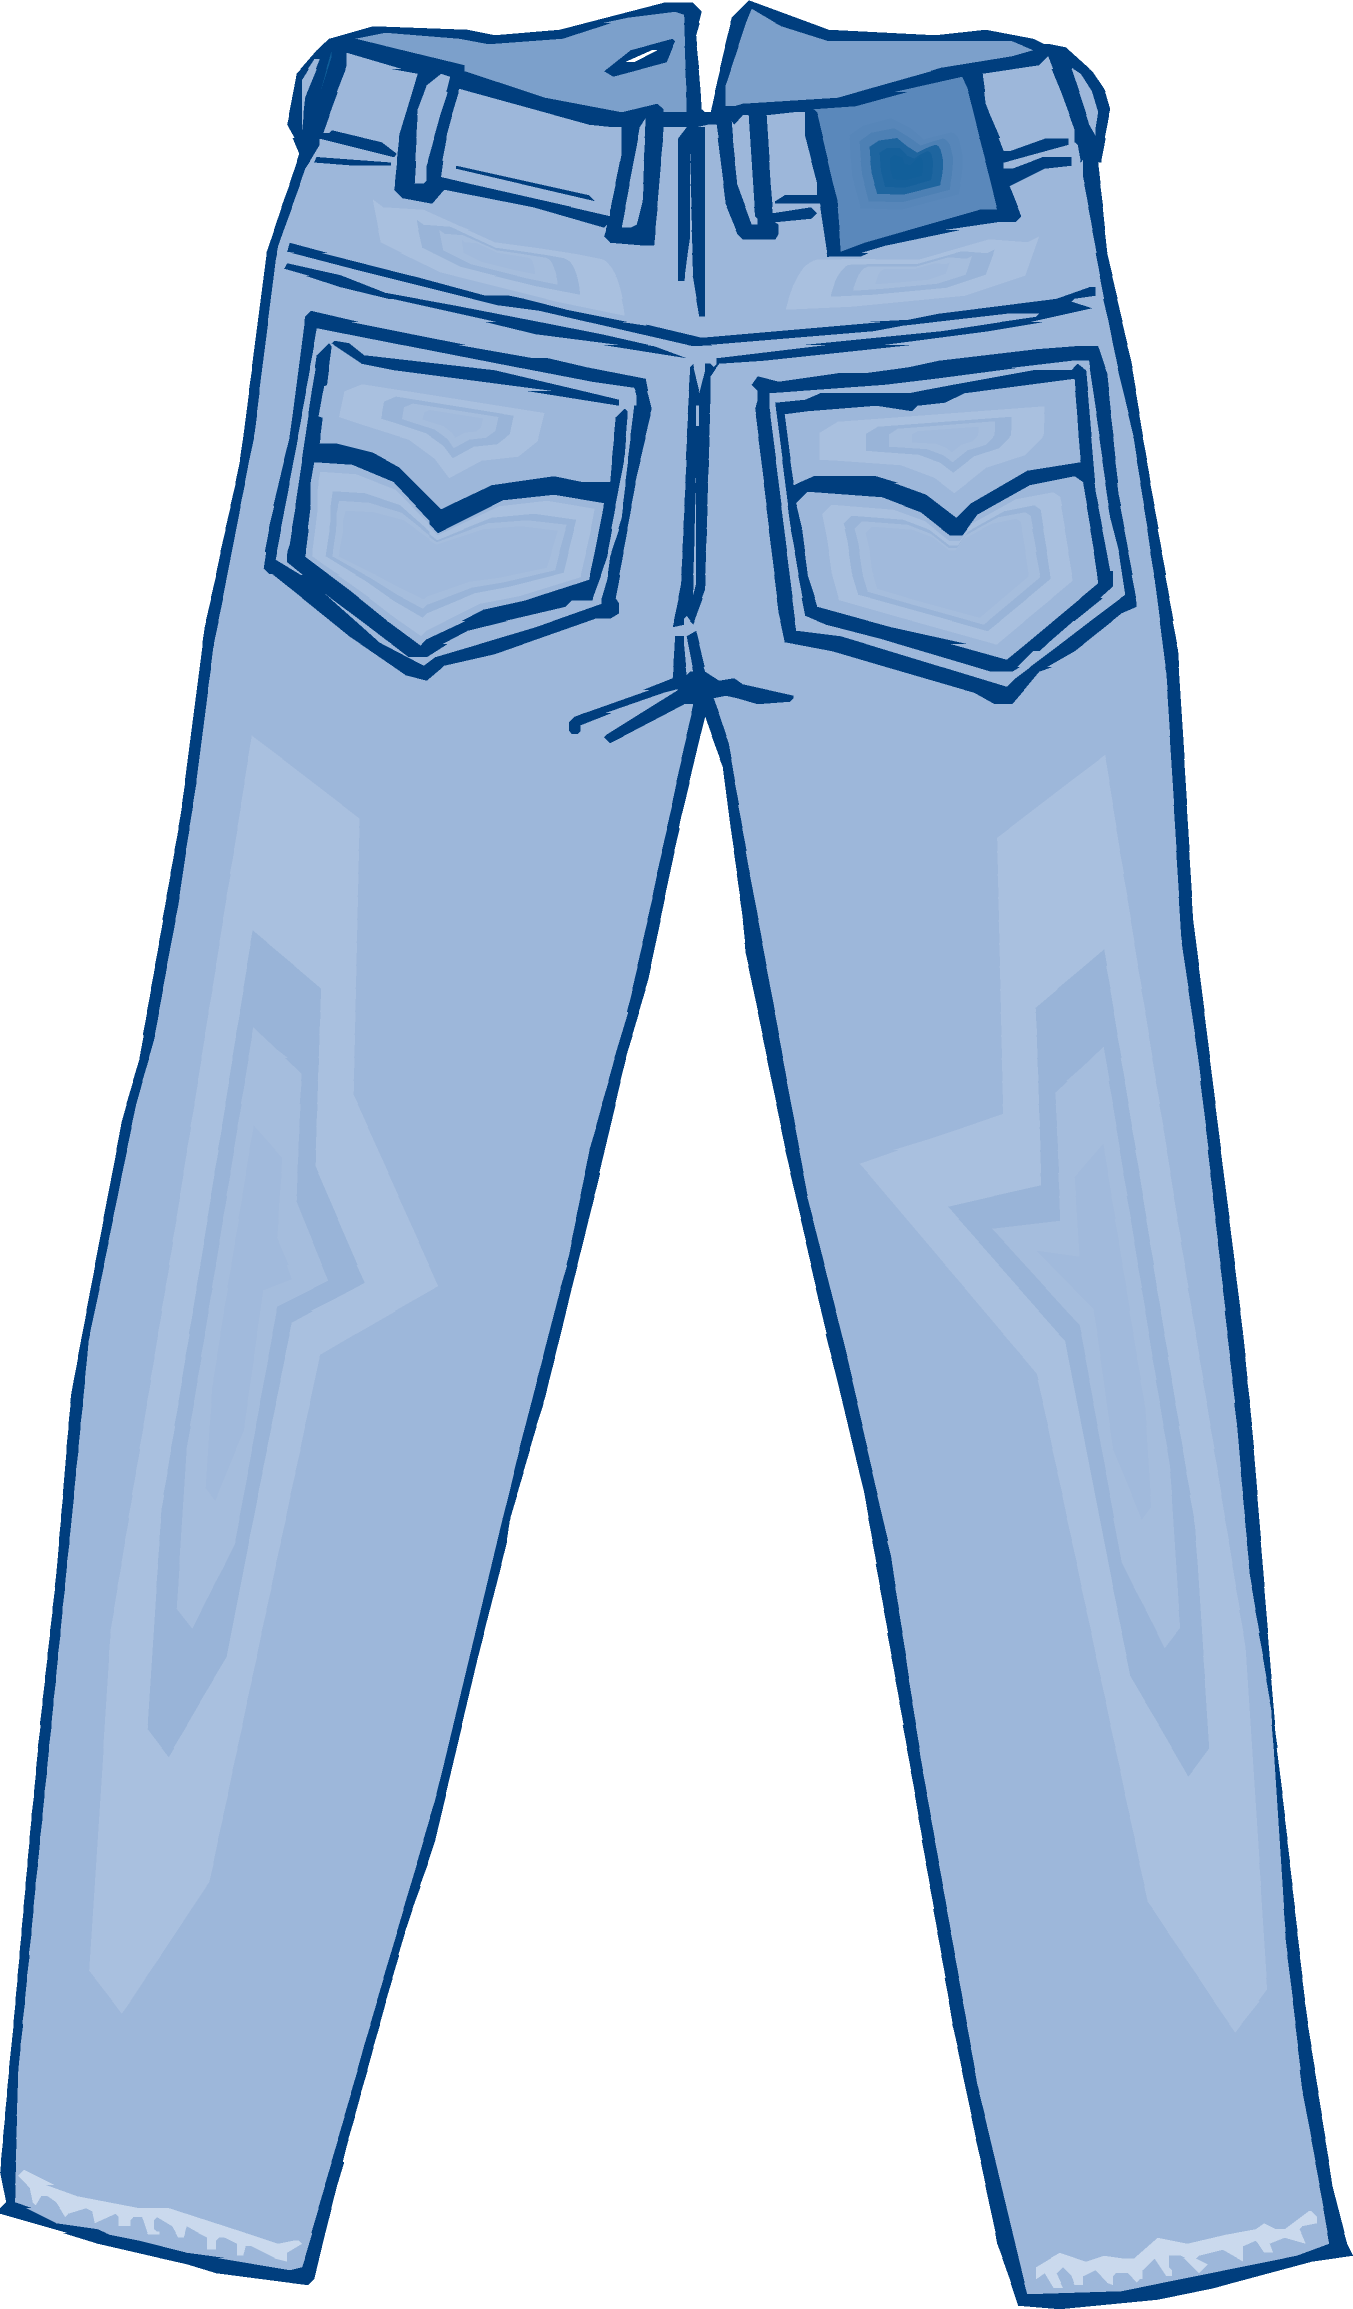 Long pants clipart graphic free stock Long pants clipart 3 » Clipart Portal graphic free stock